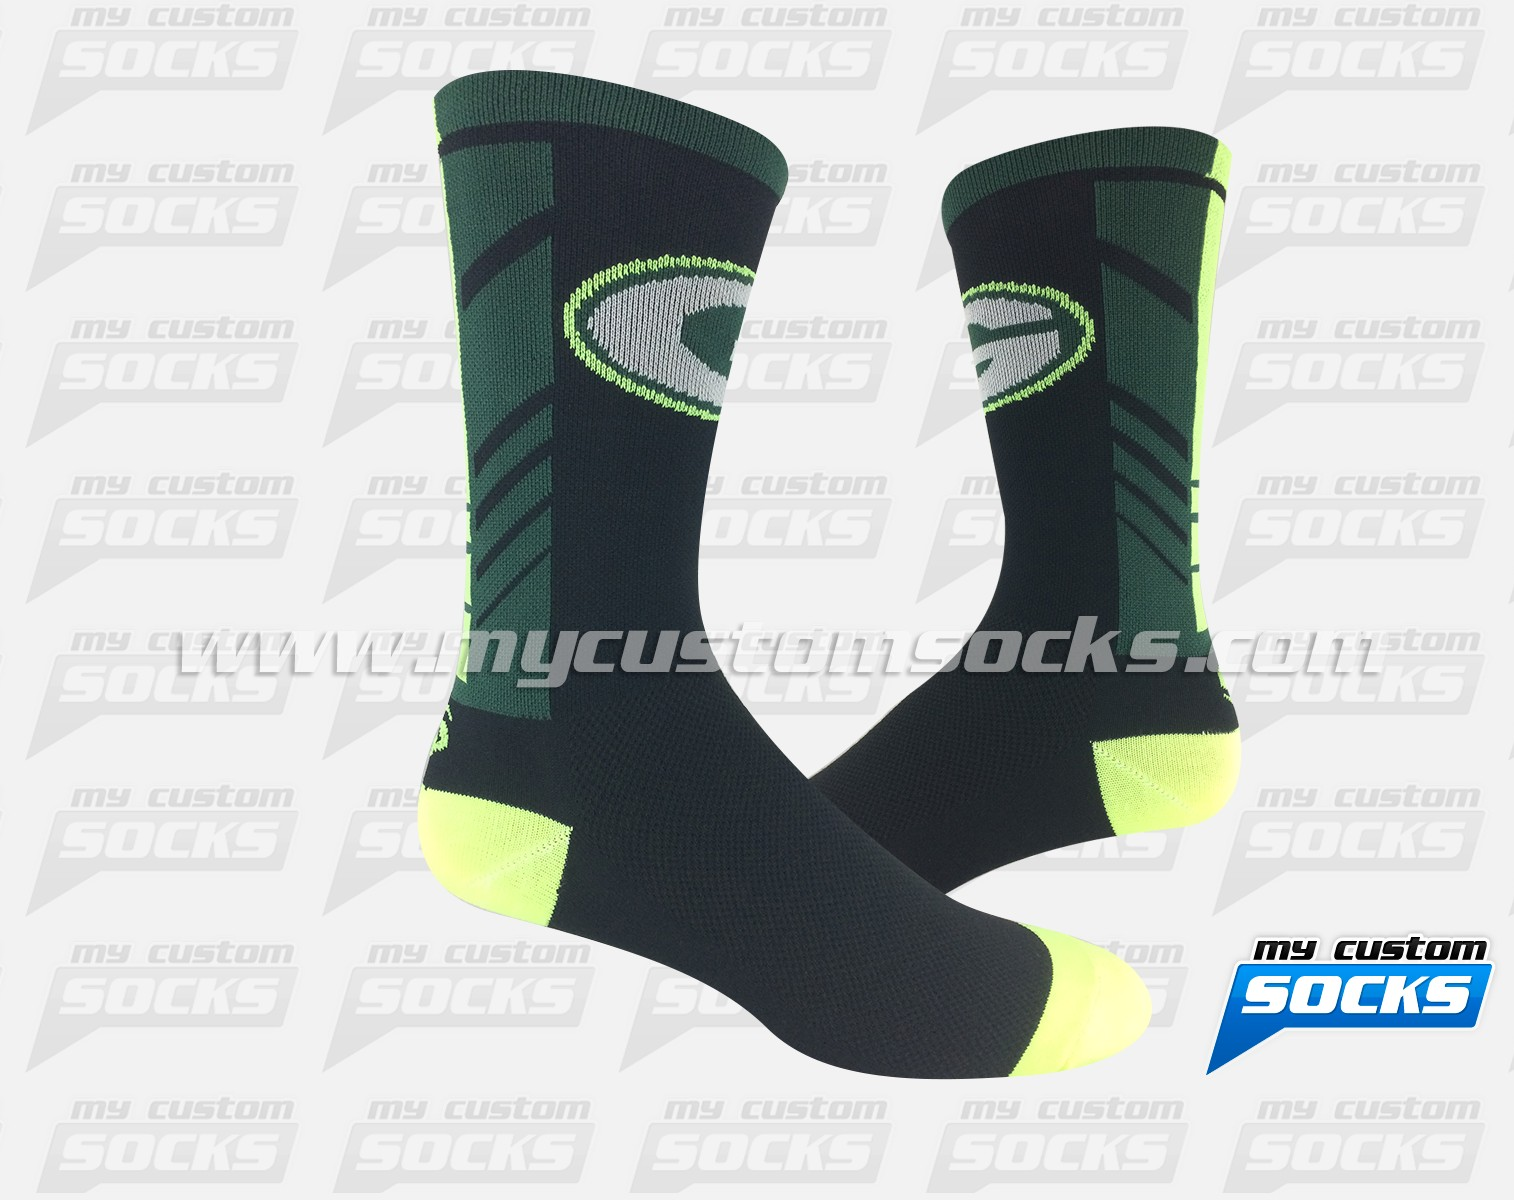 Gatewood Gators - black with G